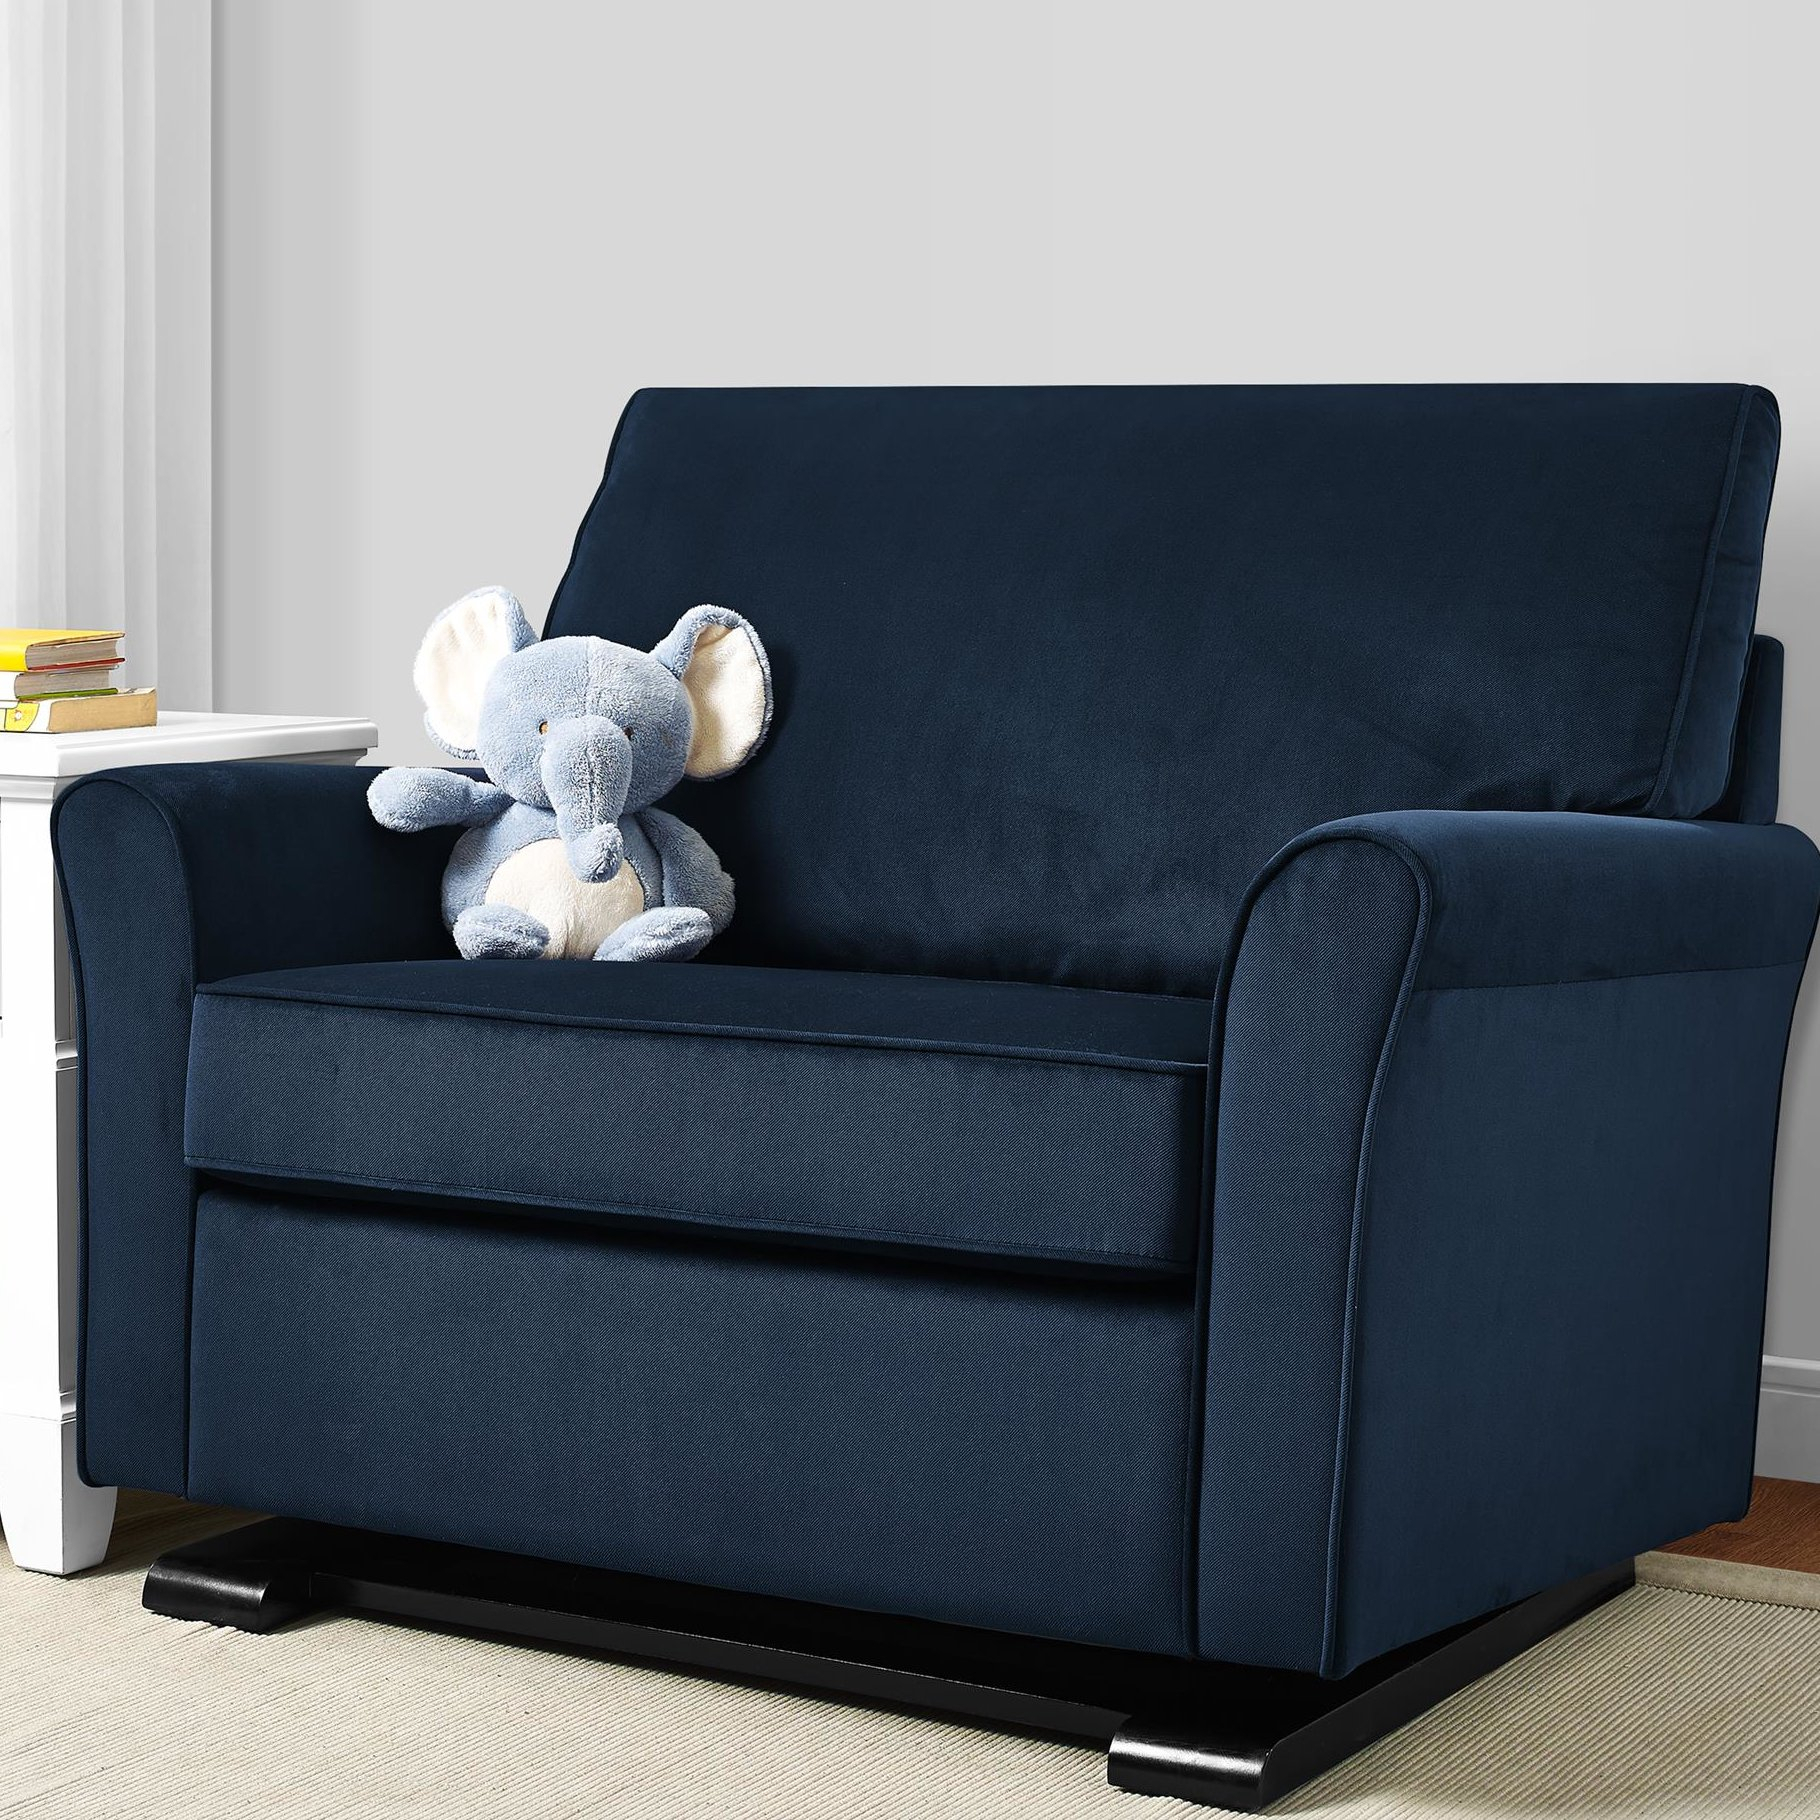 Brayden Studio Kilmarnock Chair And A Half Glider & Reviews | Wayfair Within Gina Blue Leather Sofa Chairs (Image 4 of 20)